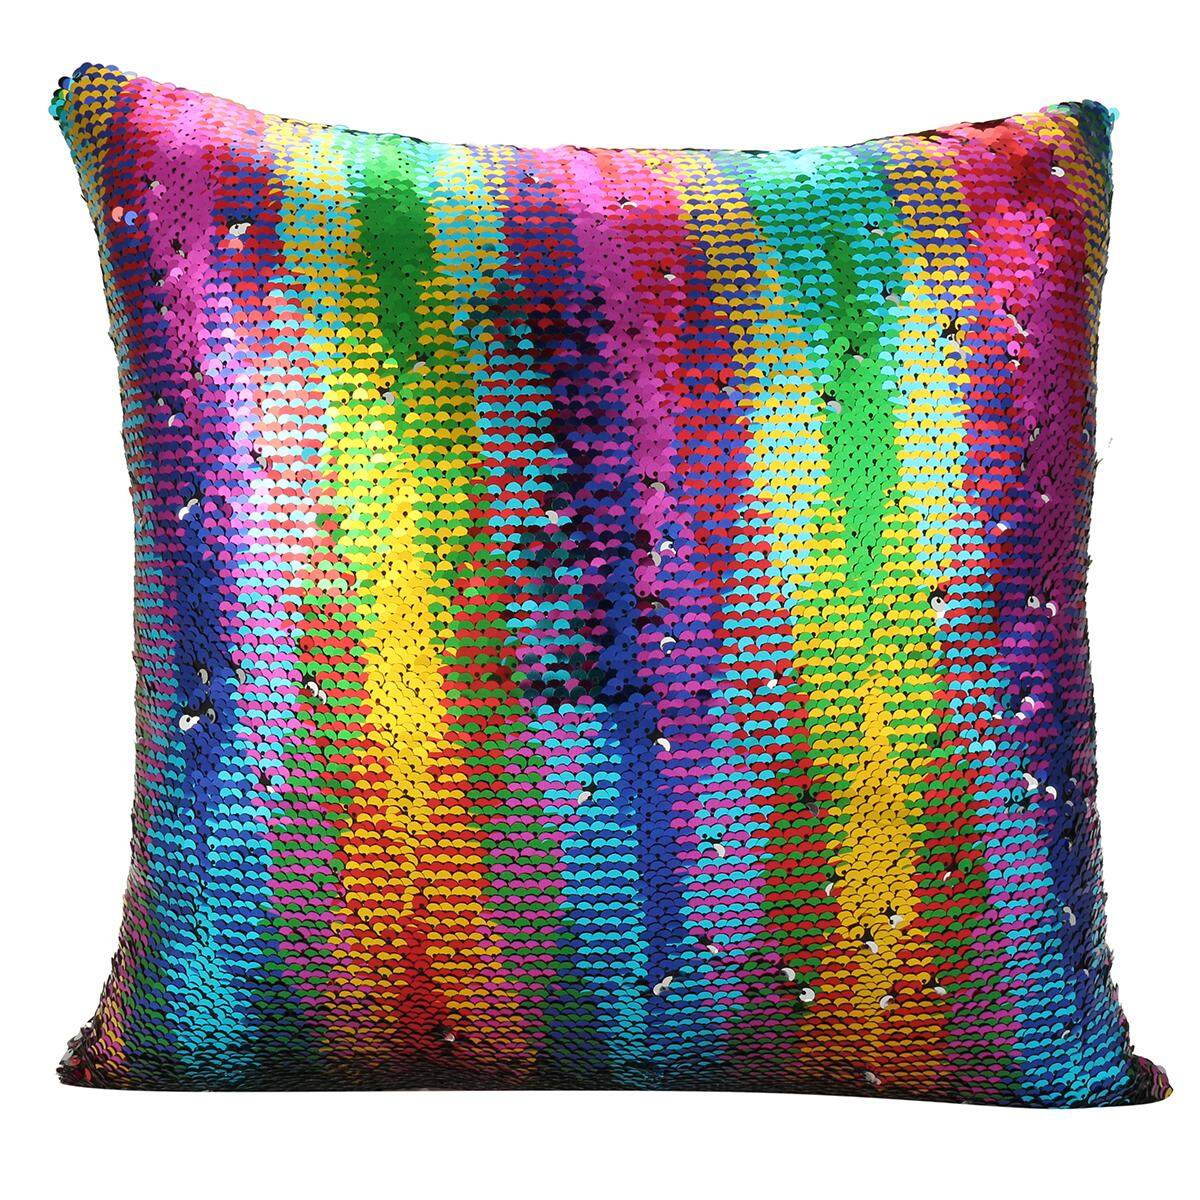 Reversible Mermaid Pillow Sequin Cover Glitter Sofa Cushion Case Double Color By Moonbeam.